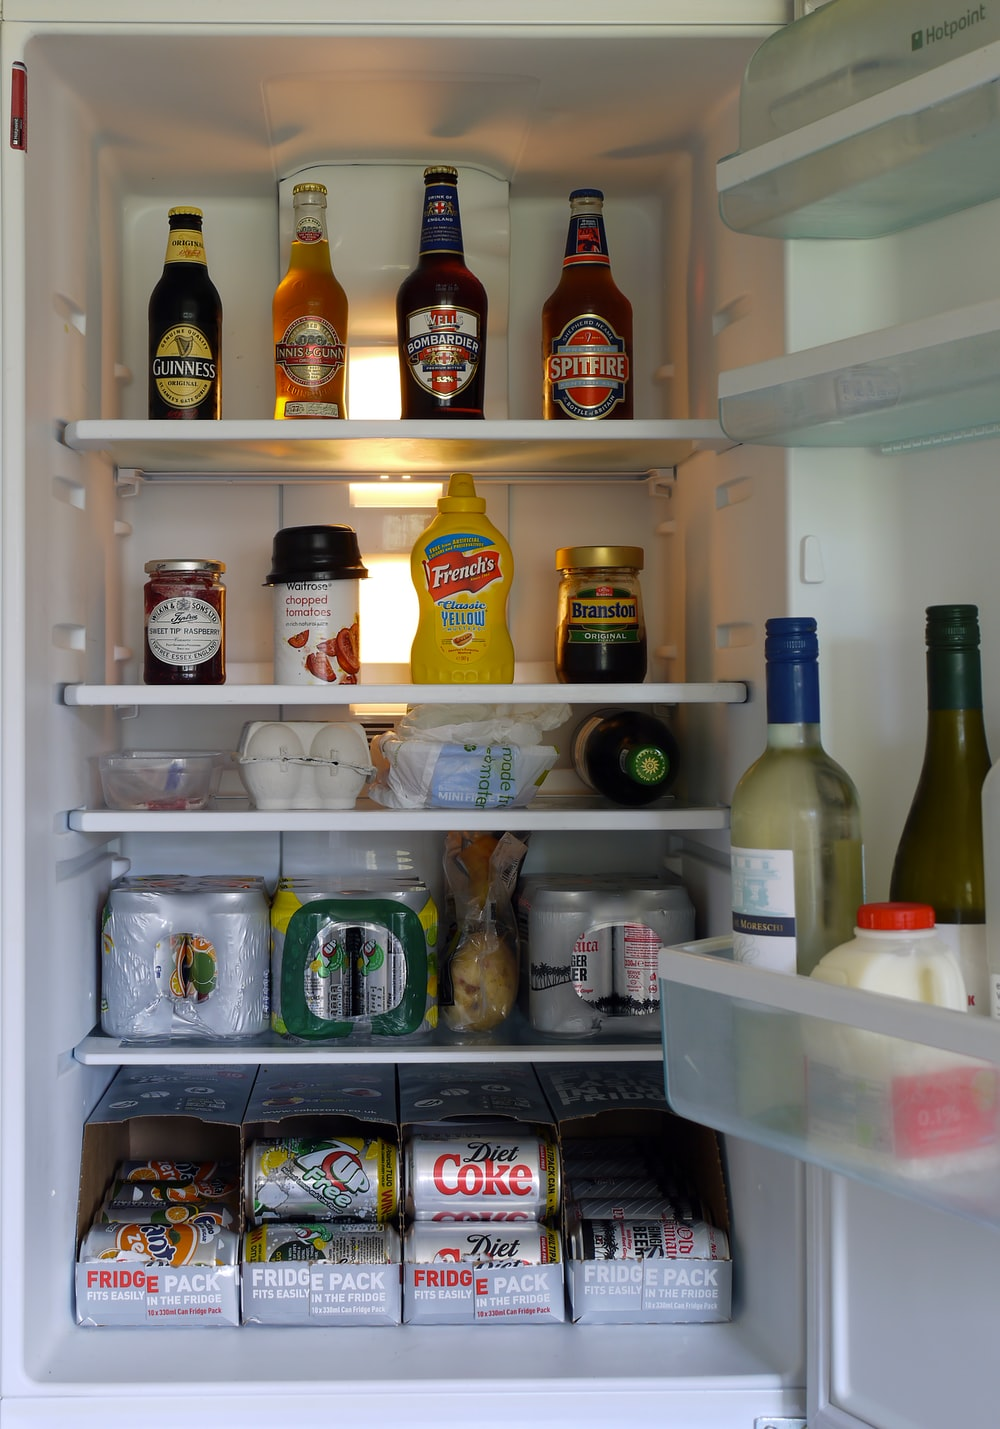 assorted beverage bottles and cans in refrigerator